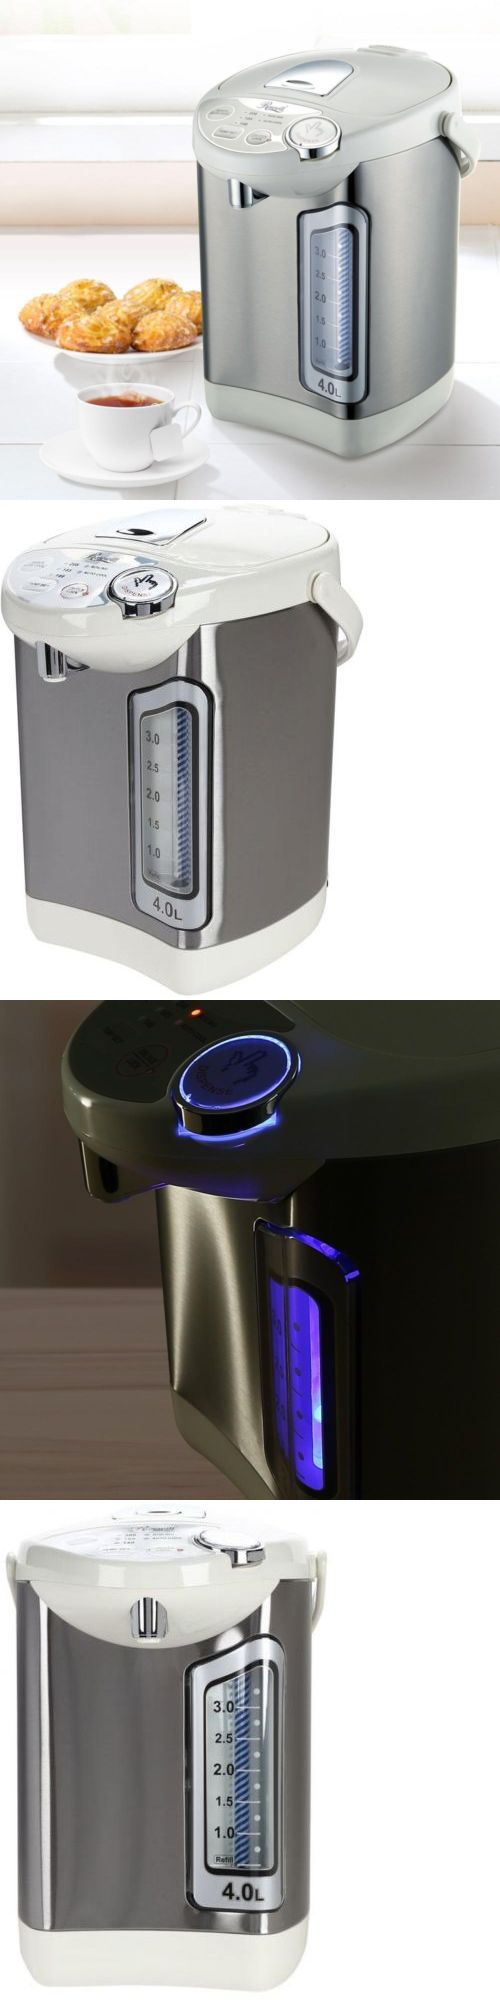 Hot Water Pots 177755: Rosewill Hot Water Dispenser Instant Warmer Boiler Automatic 1-Gallon Coffee Tea -> BUY IT NOW ONLY: $102.3 on eBay!